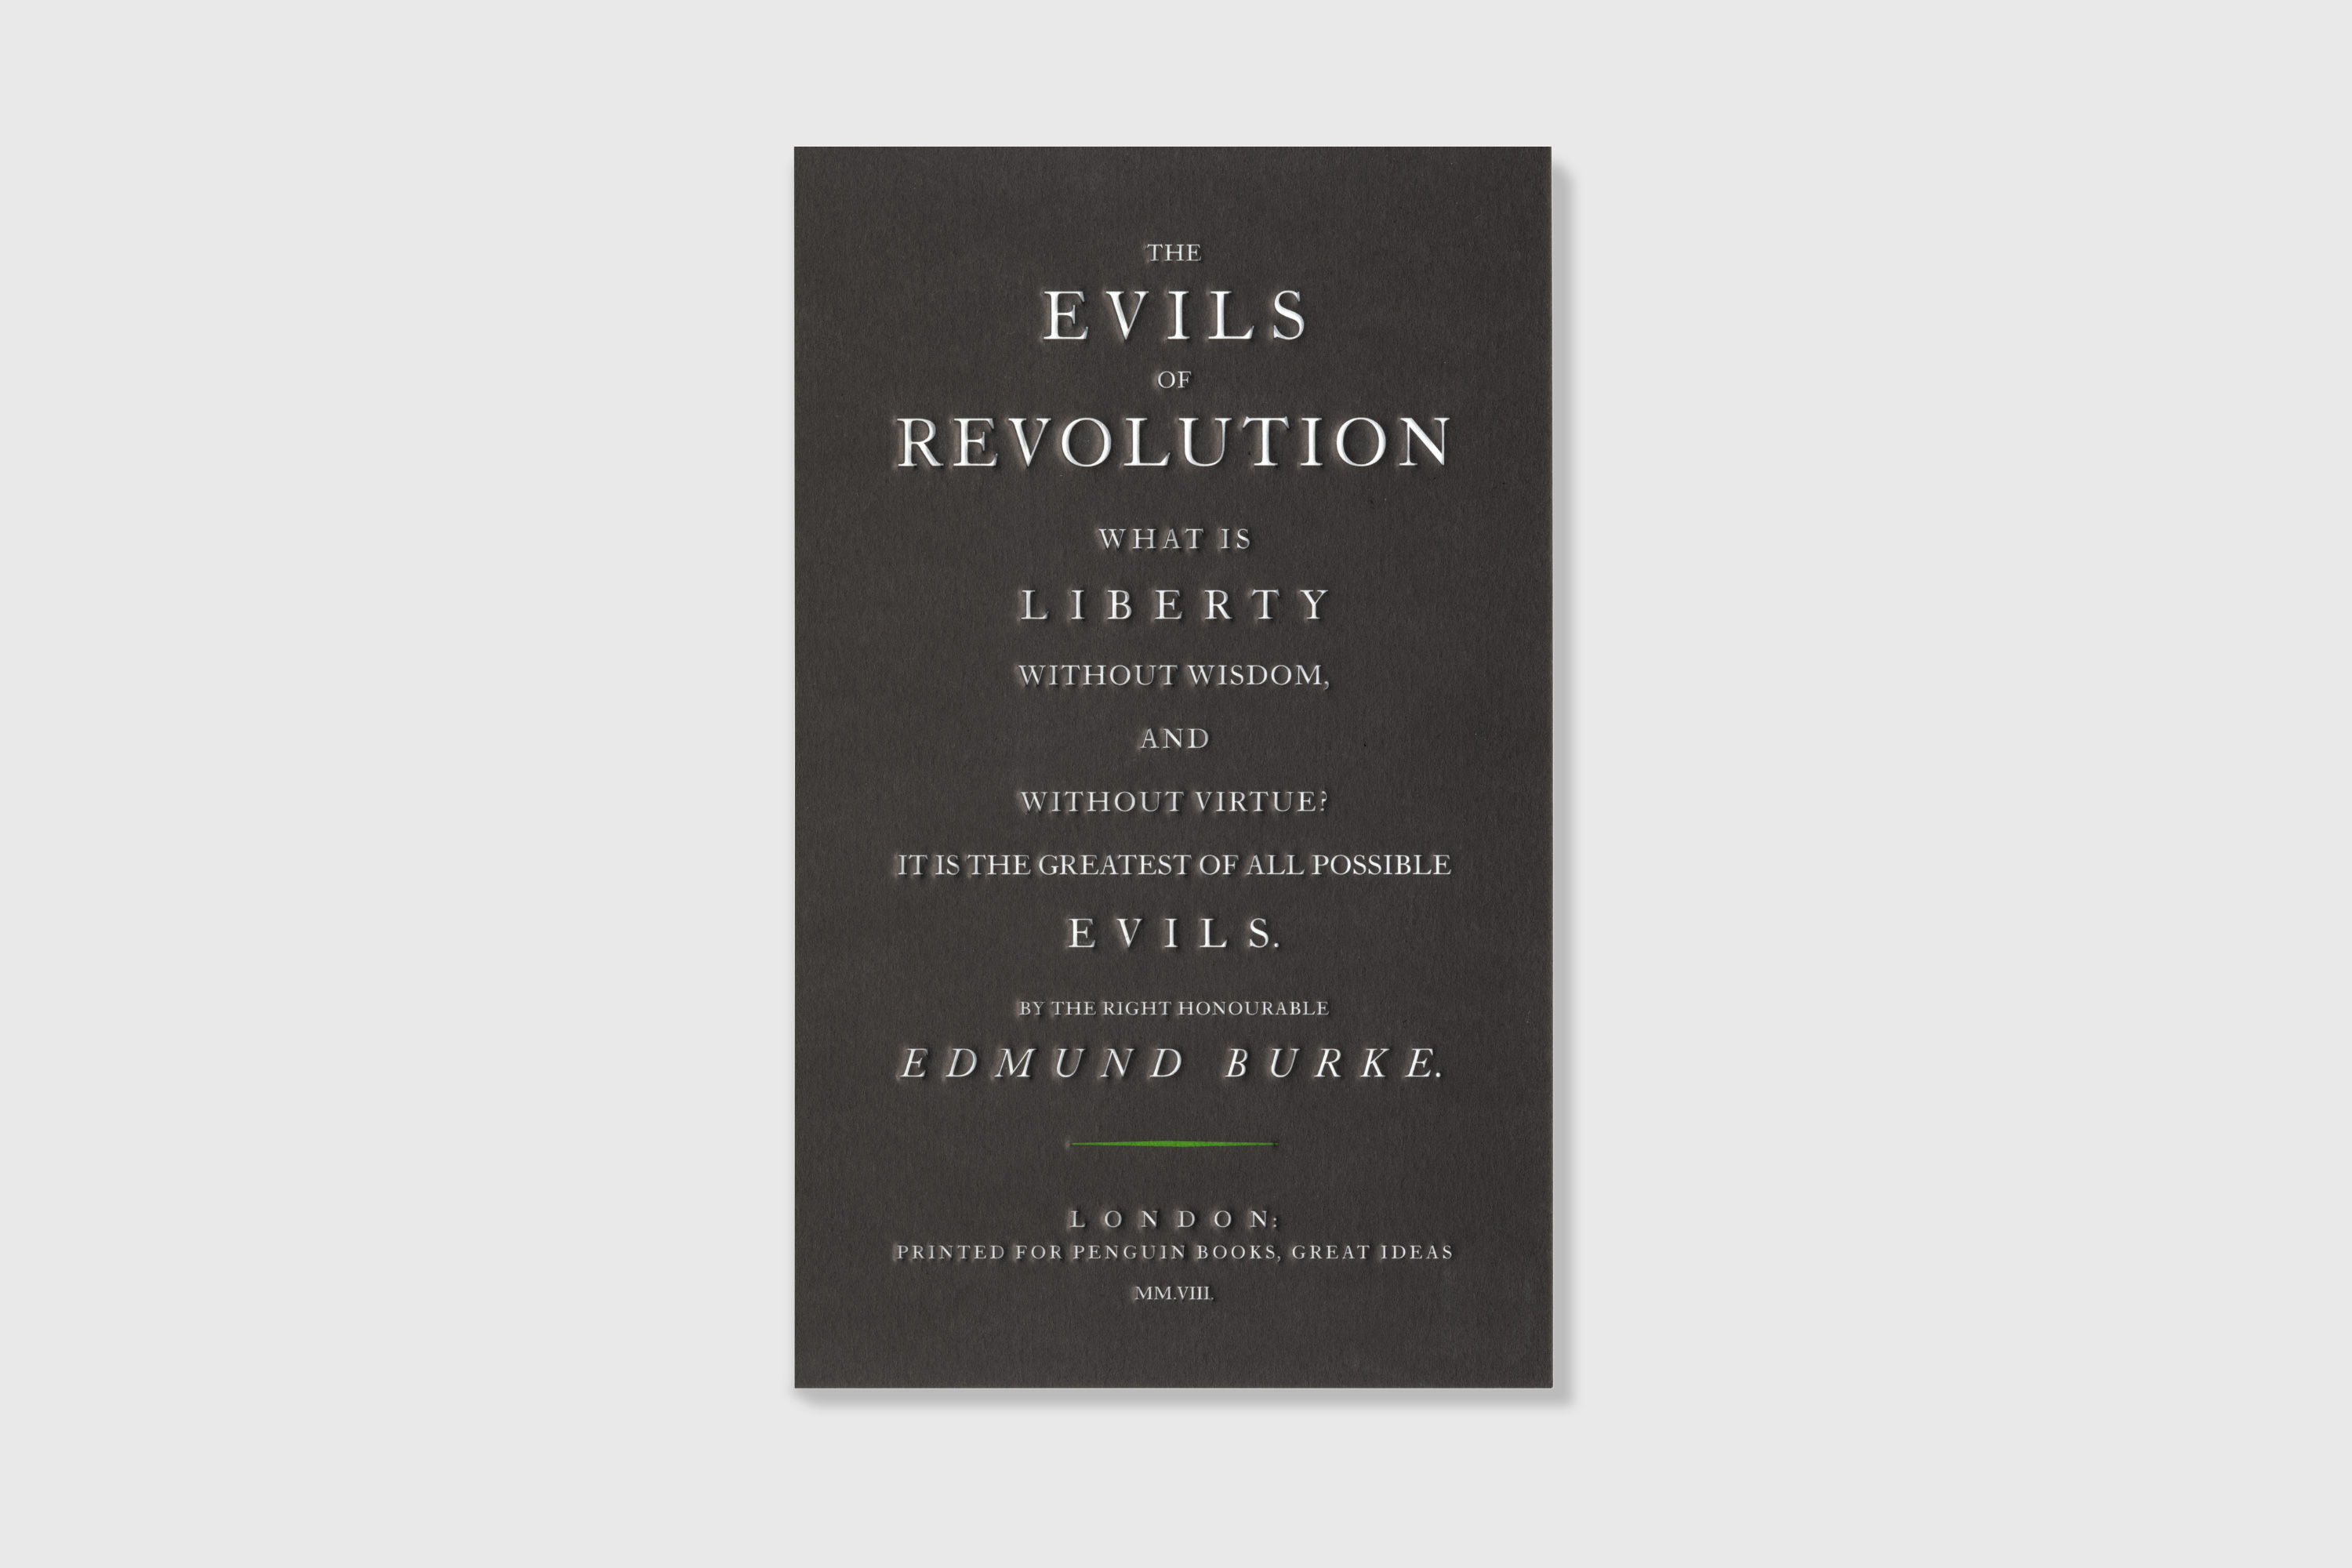 WMT_Great-Ideas-The-evils-of-revolution